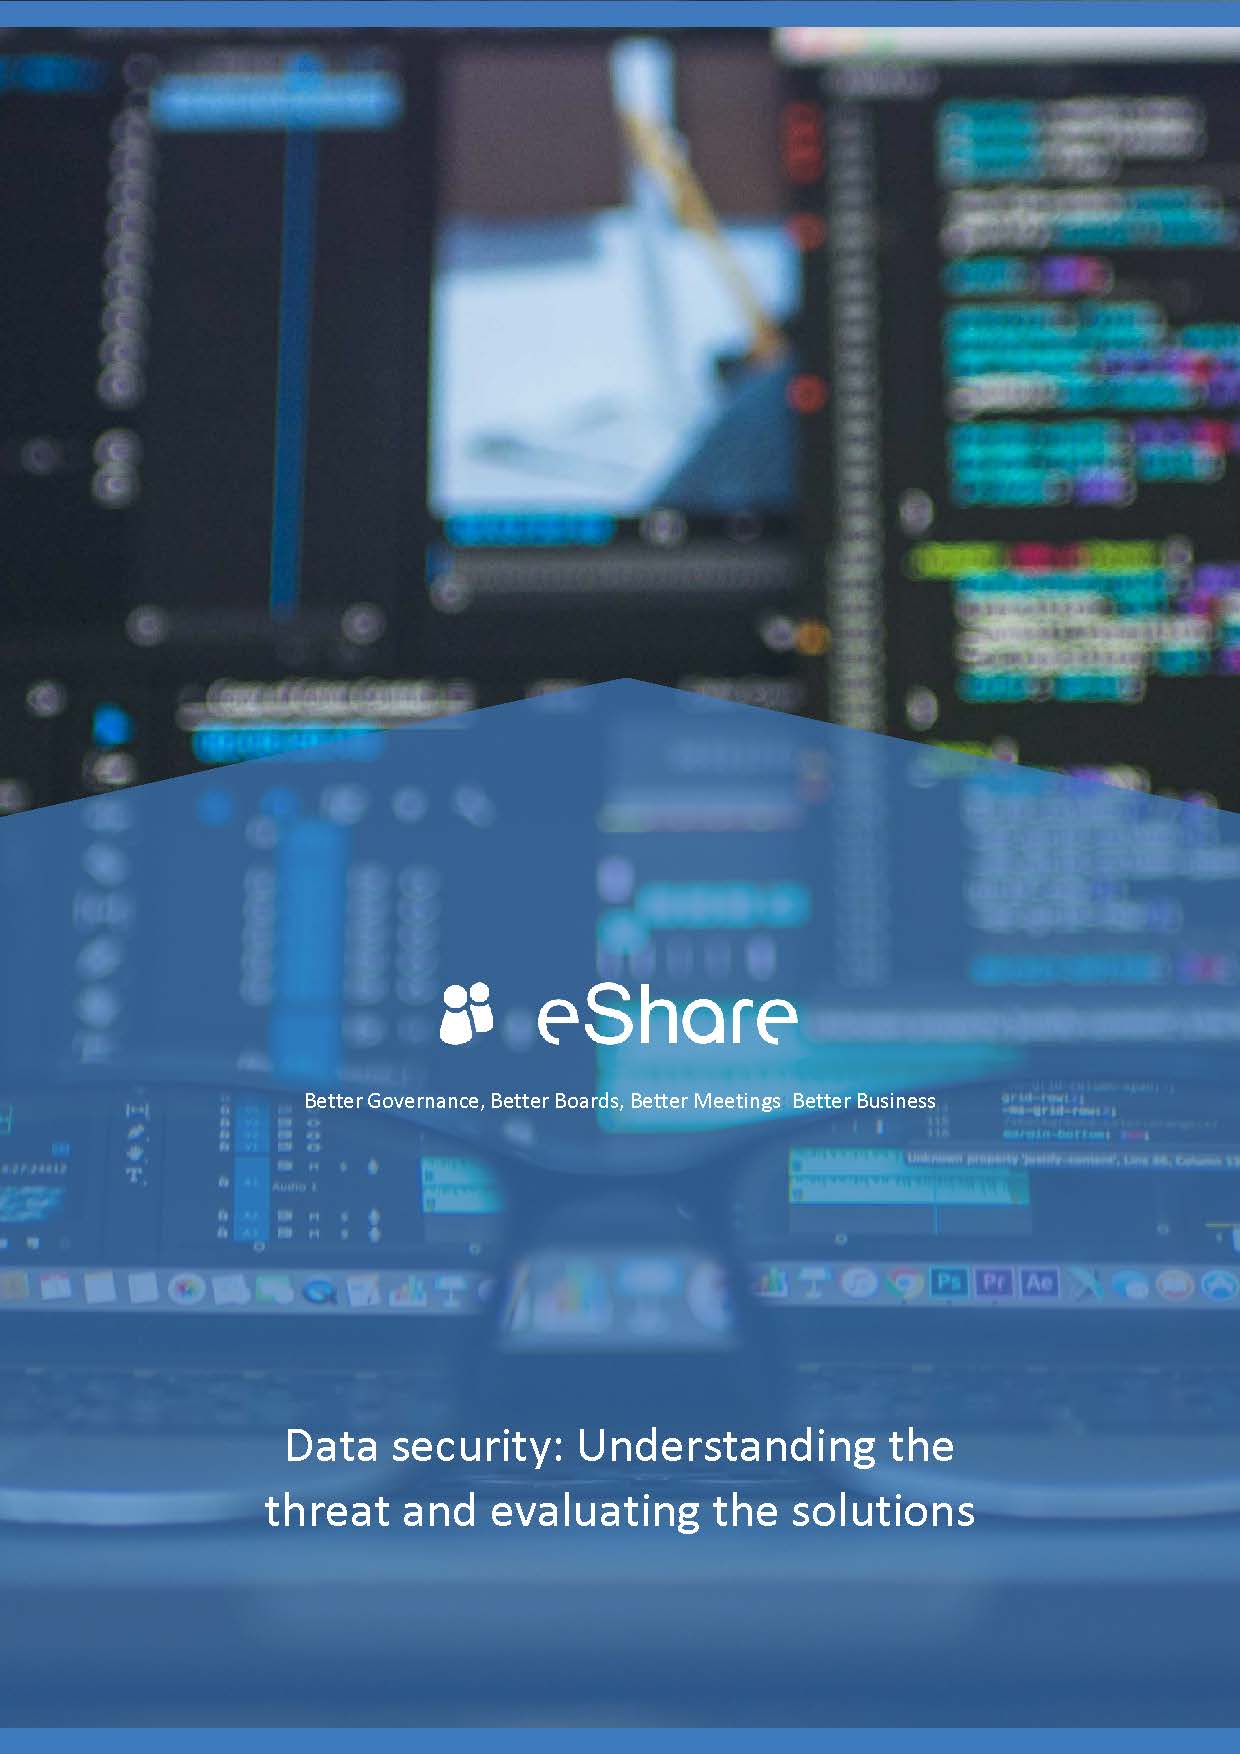 Data security: Understanding the threat and evaluating the solutions